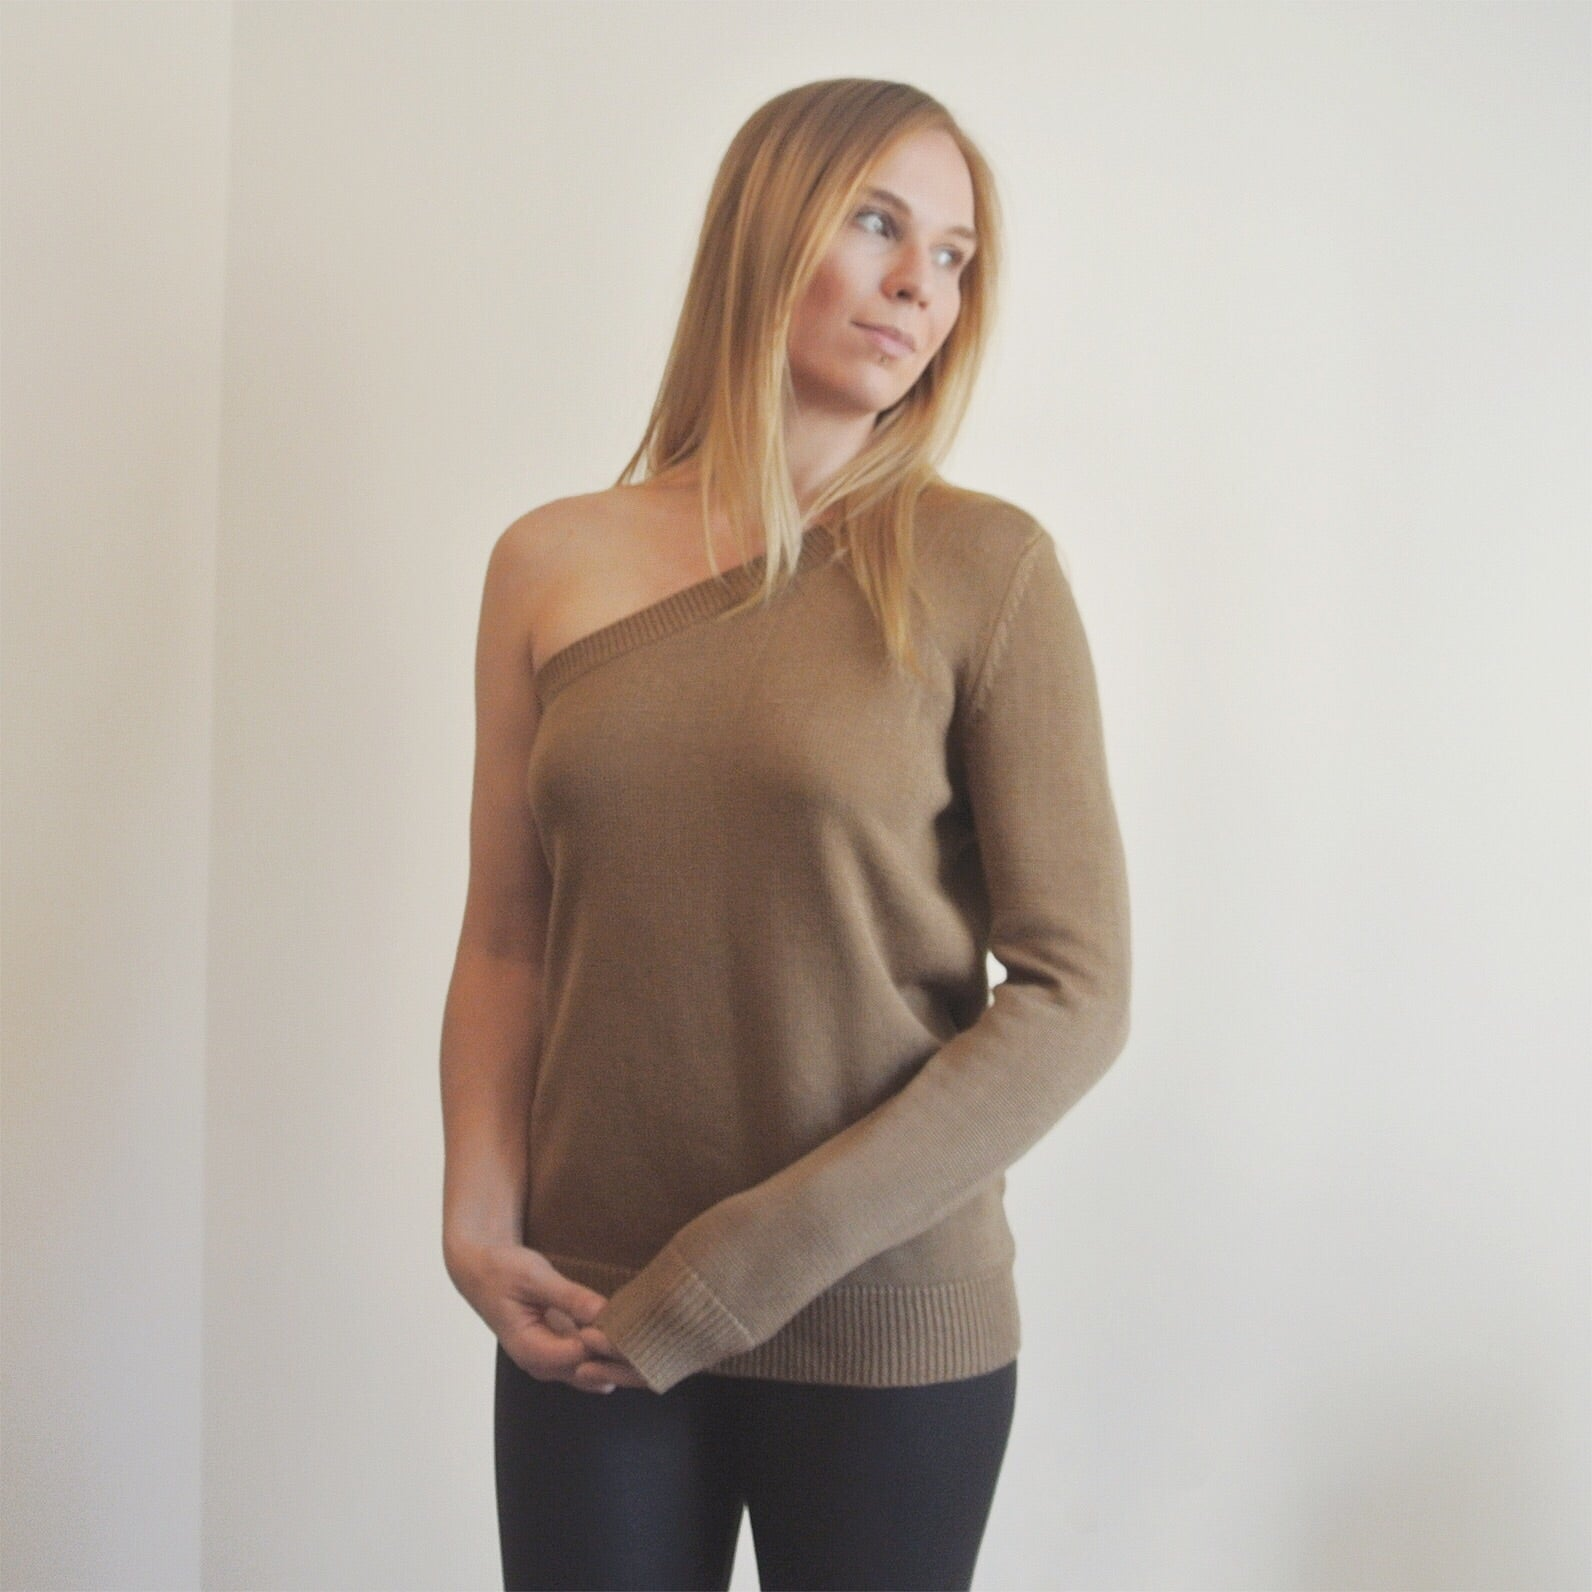 Michael Kors One-Shoulder Sweater